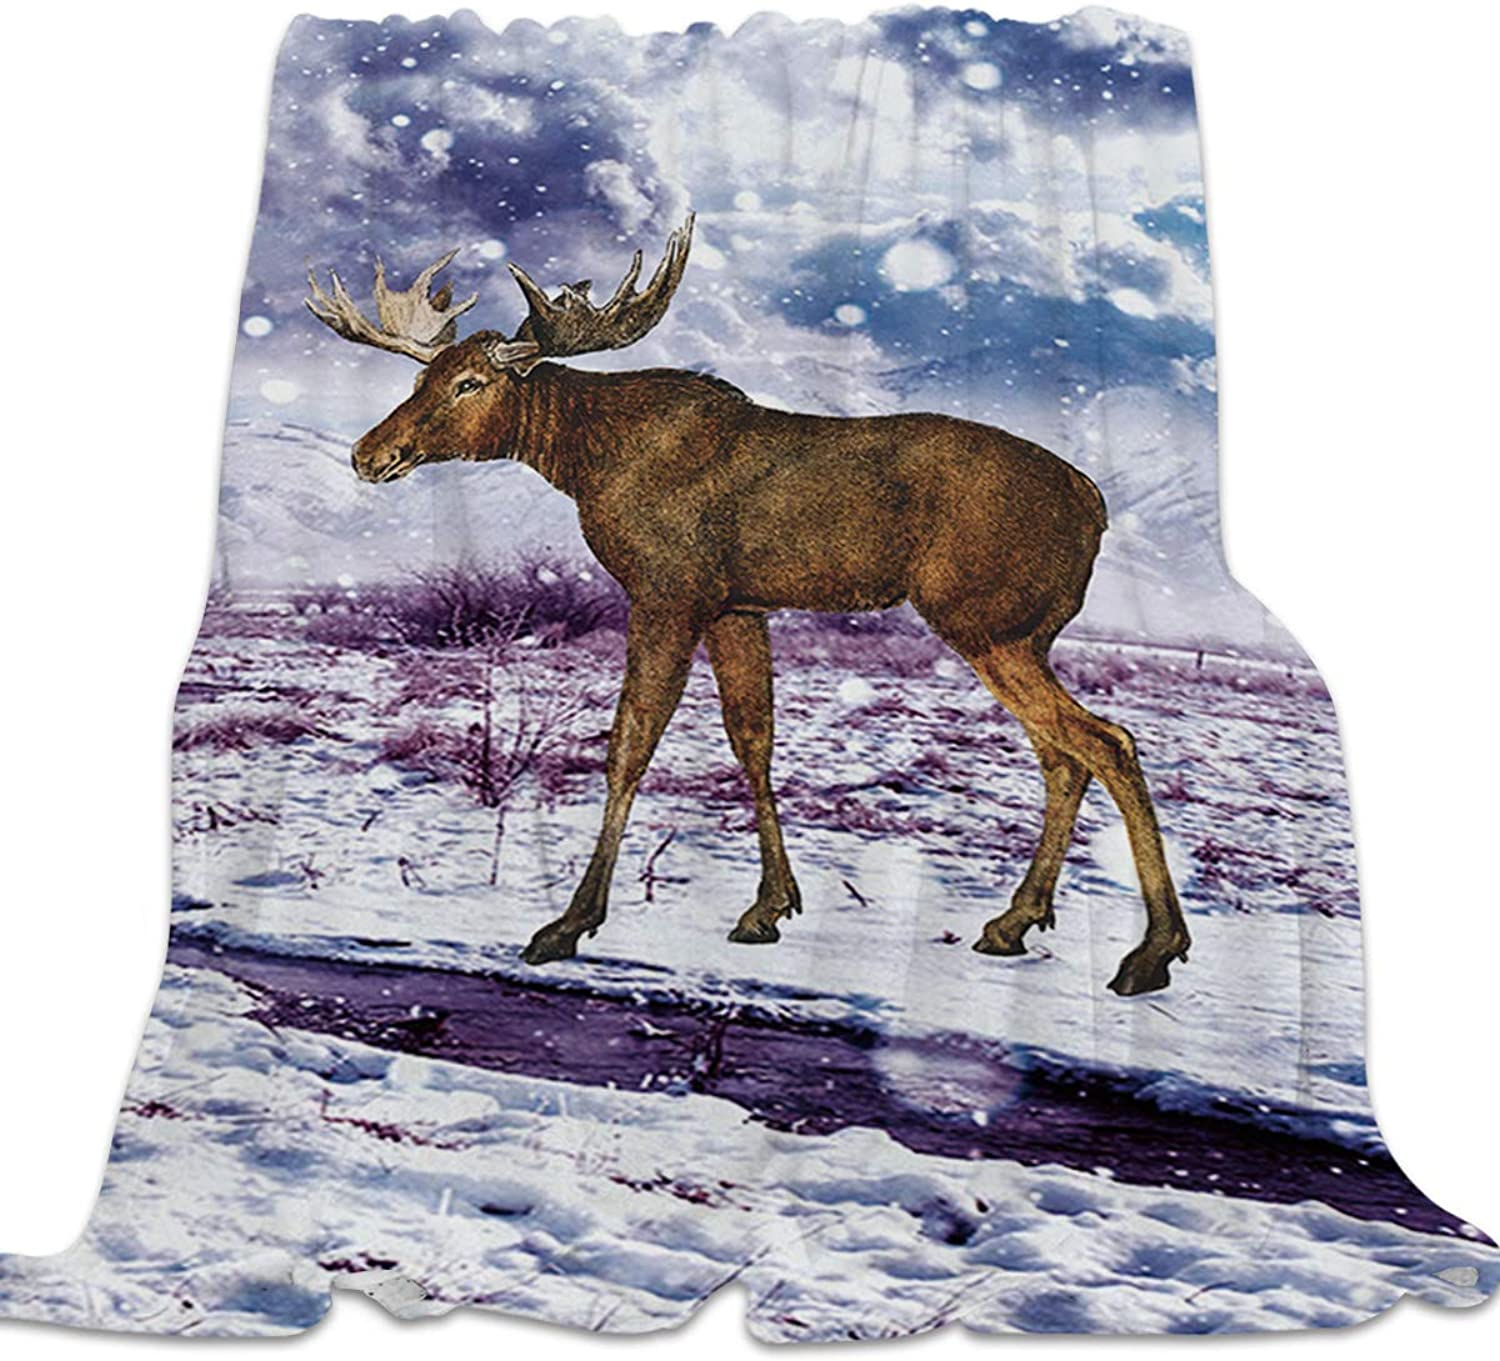 YEHO Art Gallery Flannel Fleece Bed Blanket Super Soft Cozy ThrowBlankets for Kids Girls Boys,Lightweight Blankets for Bed Sofa Couch Chair Day Nap,Hand Painting Elk Deer in The Snow,49x59inch